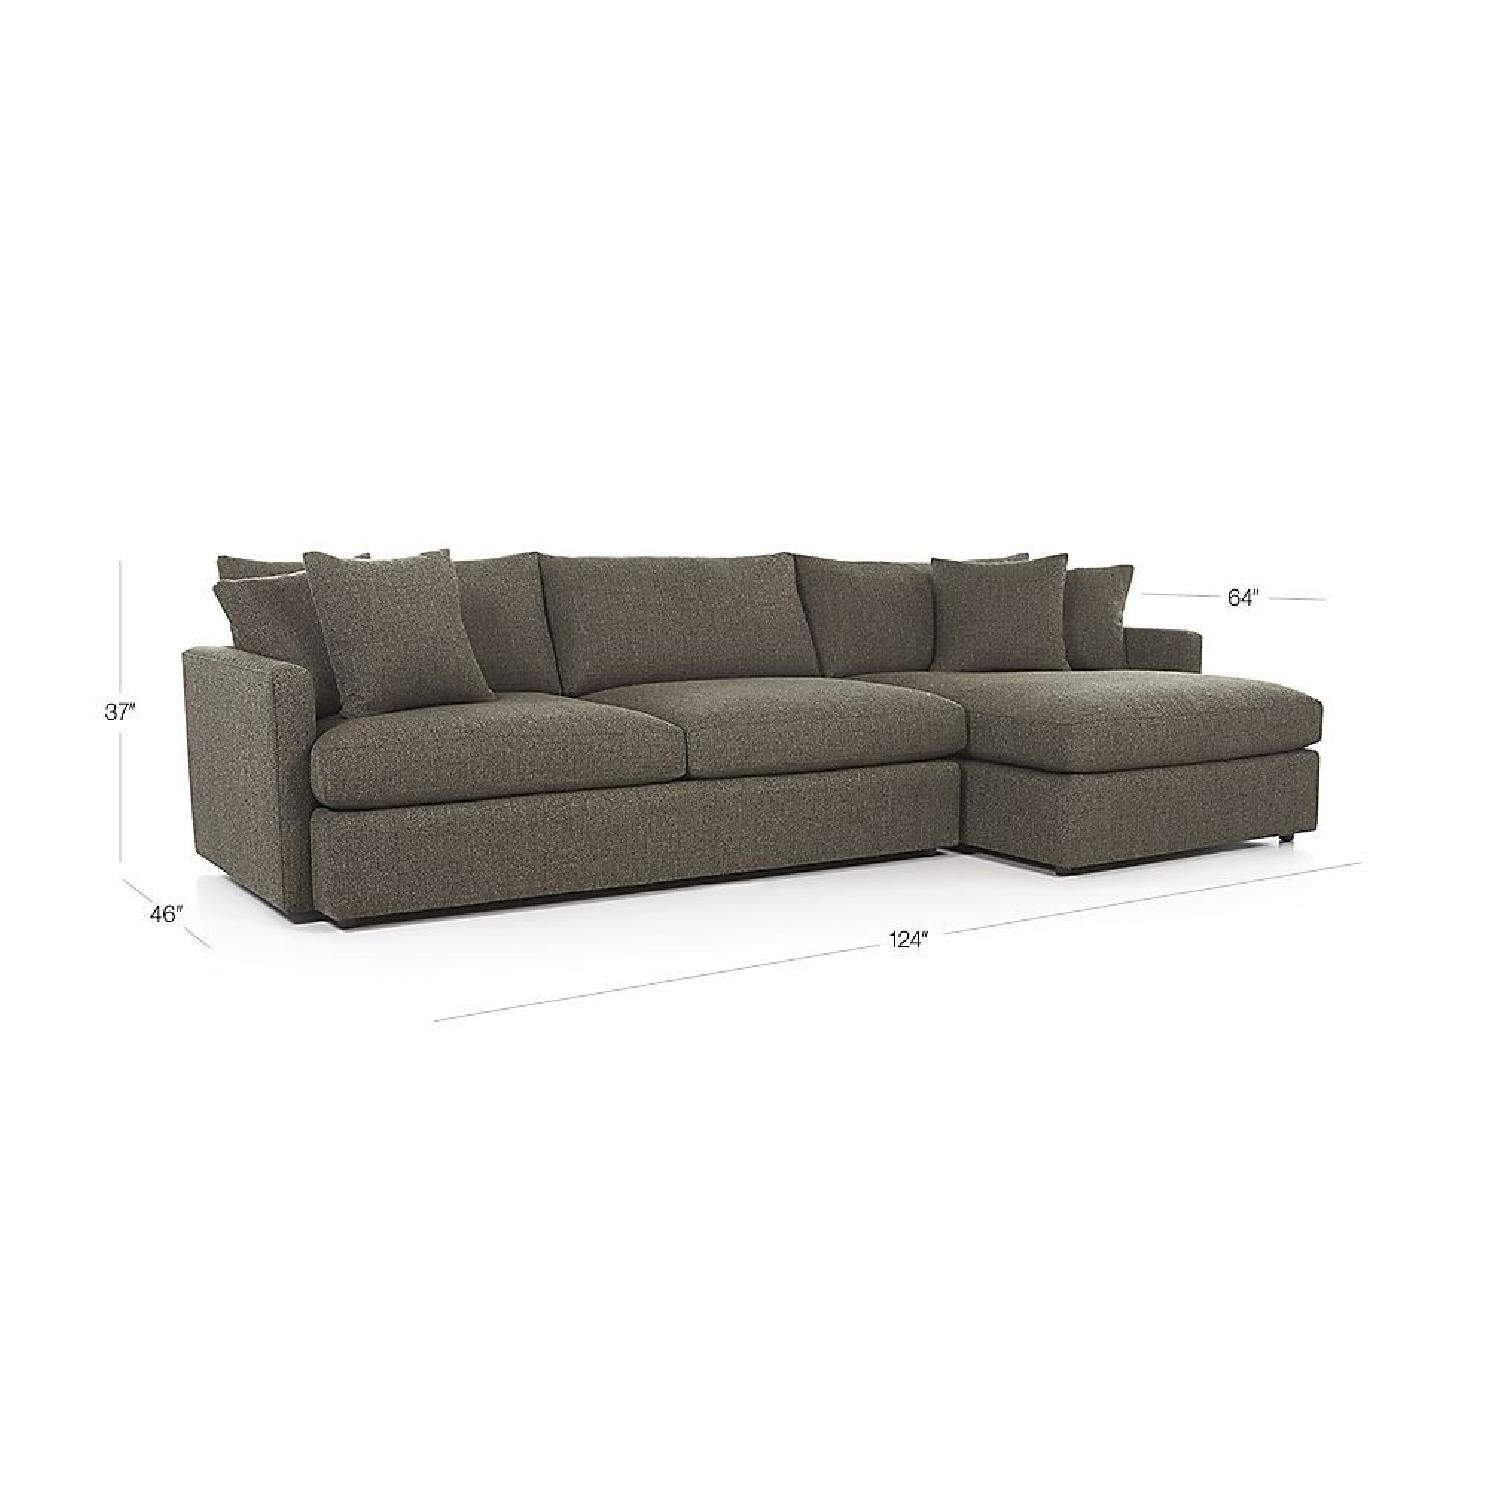 furniture crate and barrel couch crate and barrel twin sleeper axis ii sofa review. Black Bedroom Furniture Sets. Home Design Ideas